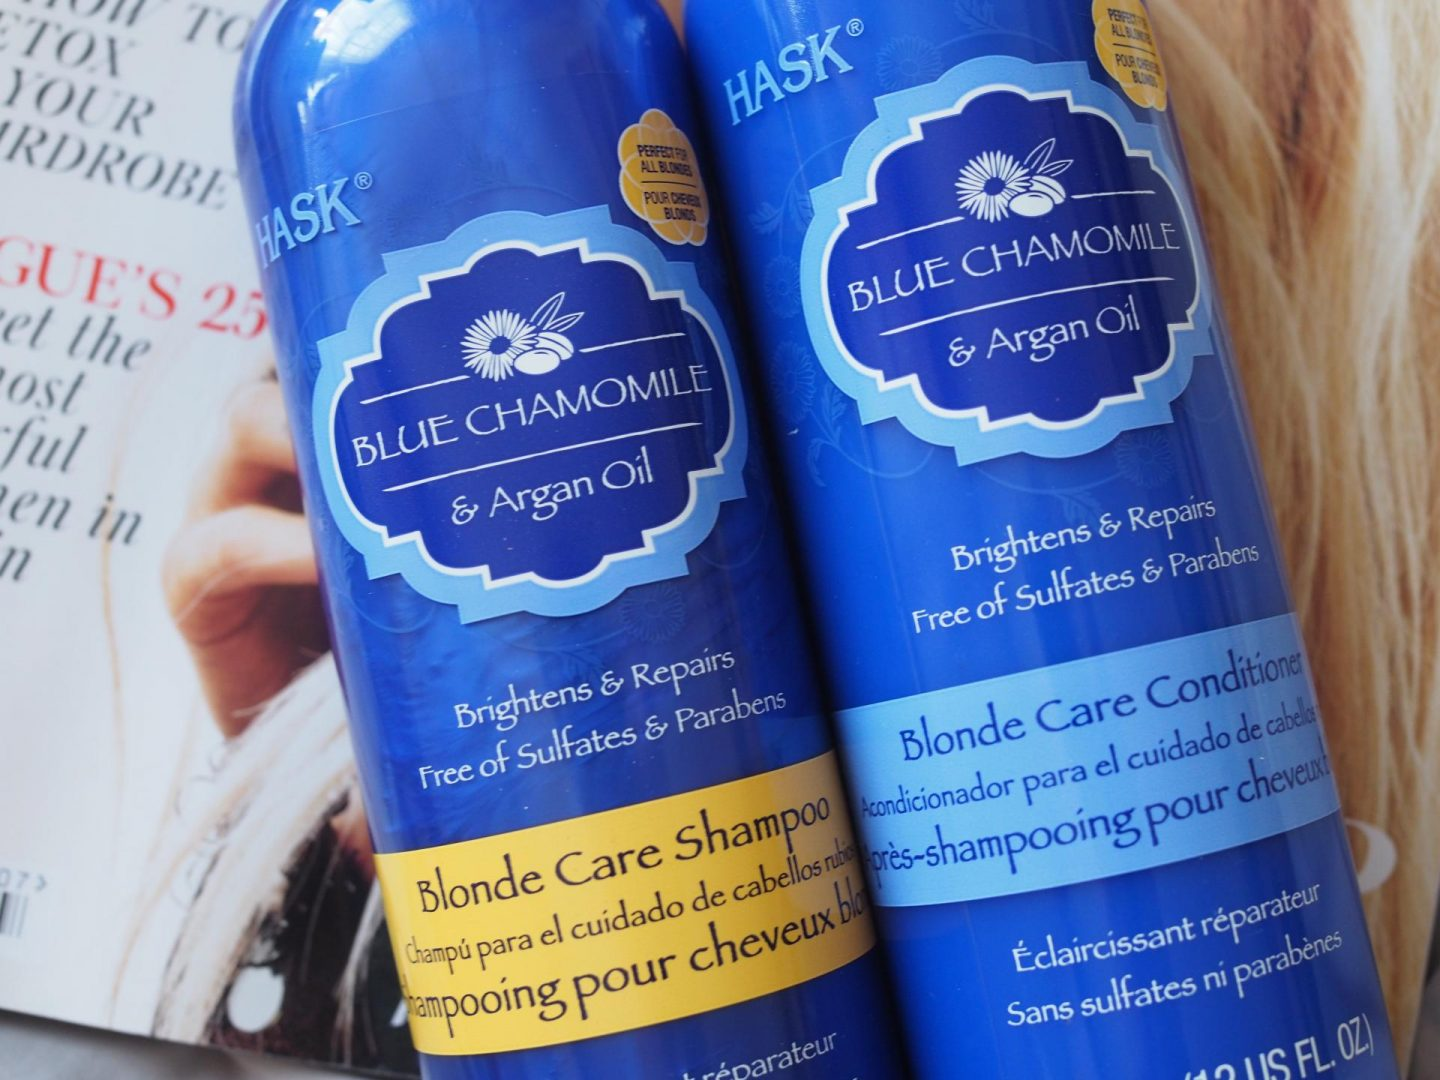 Hask Blue Chamomile & Argan Oil Blonde Care Shampoo/Conditioner